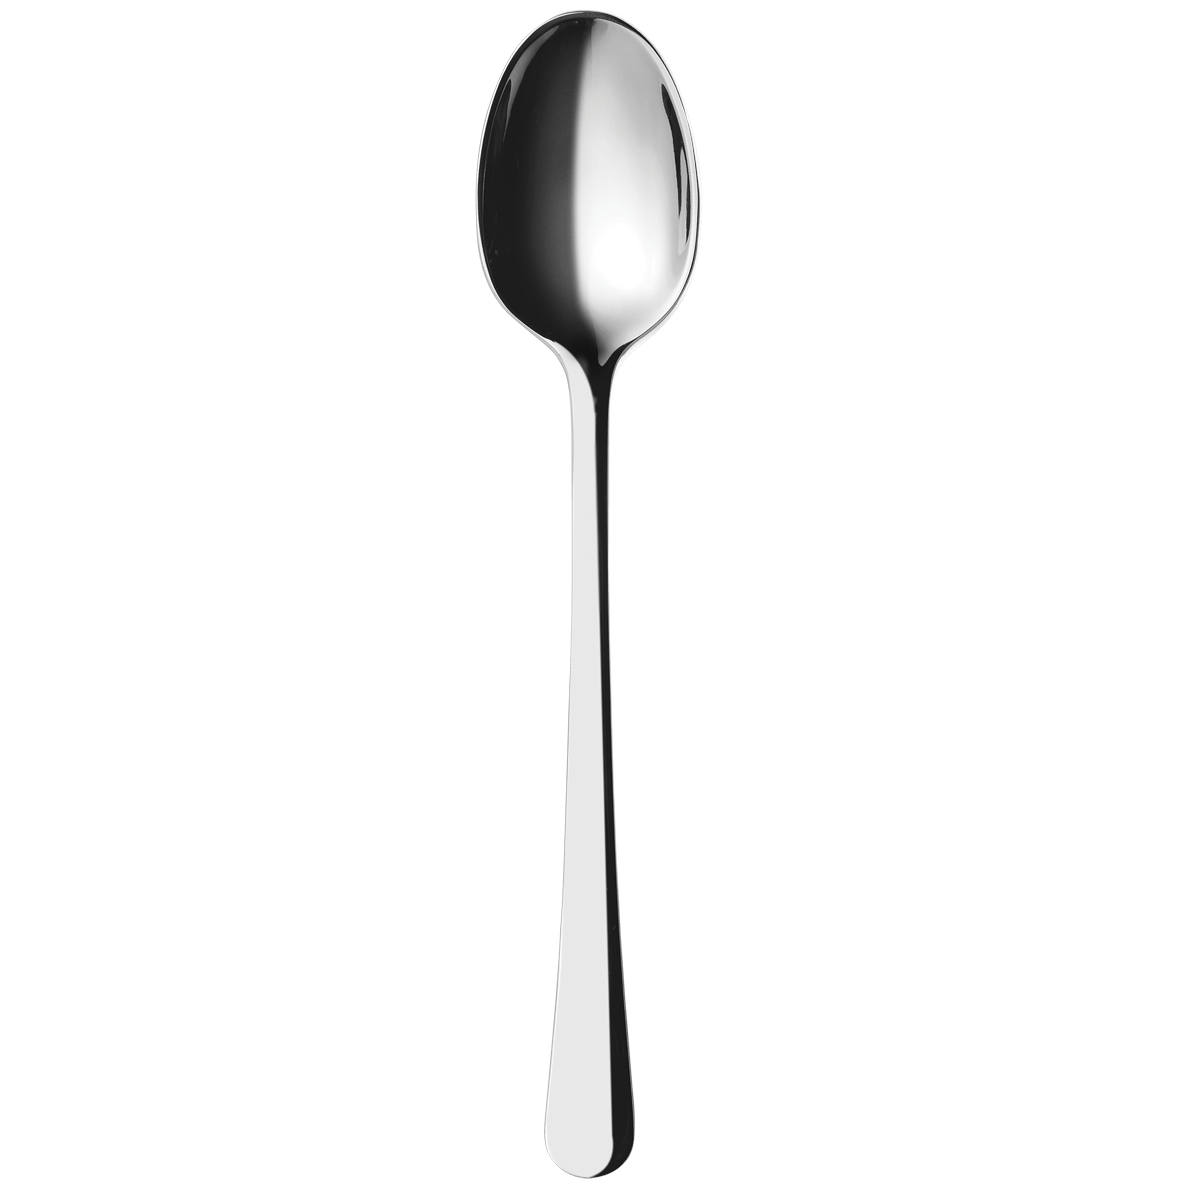 Spoon Png Image PNG Image